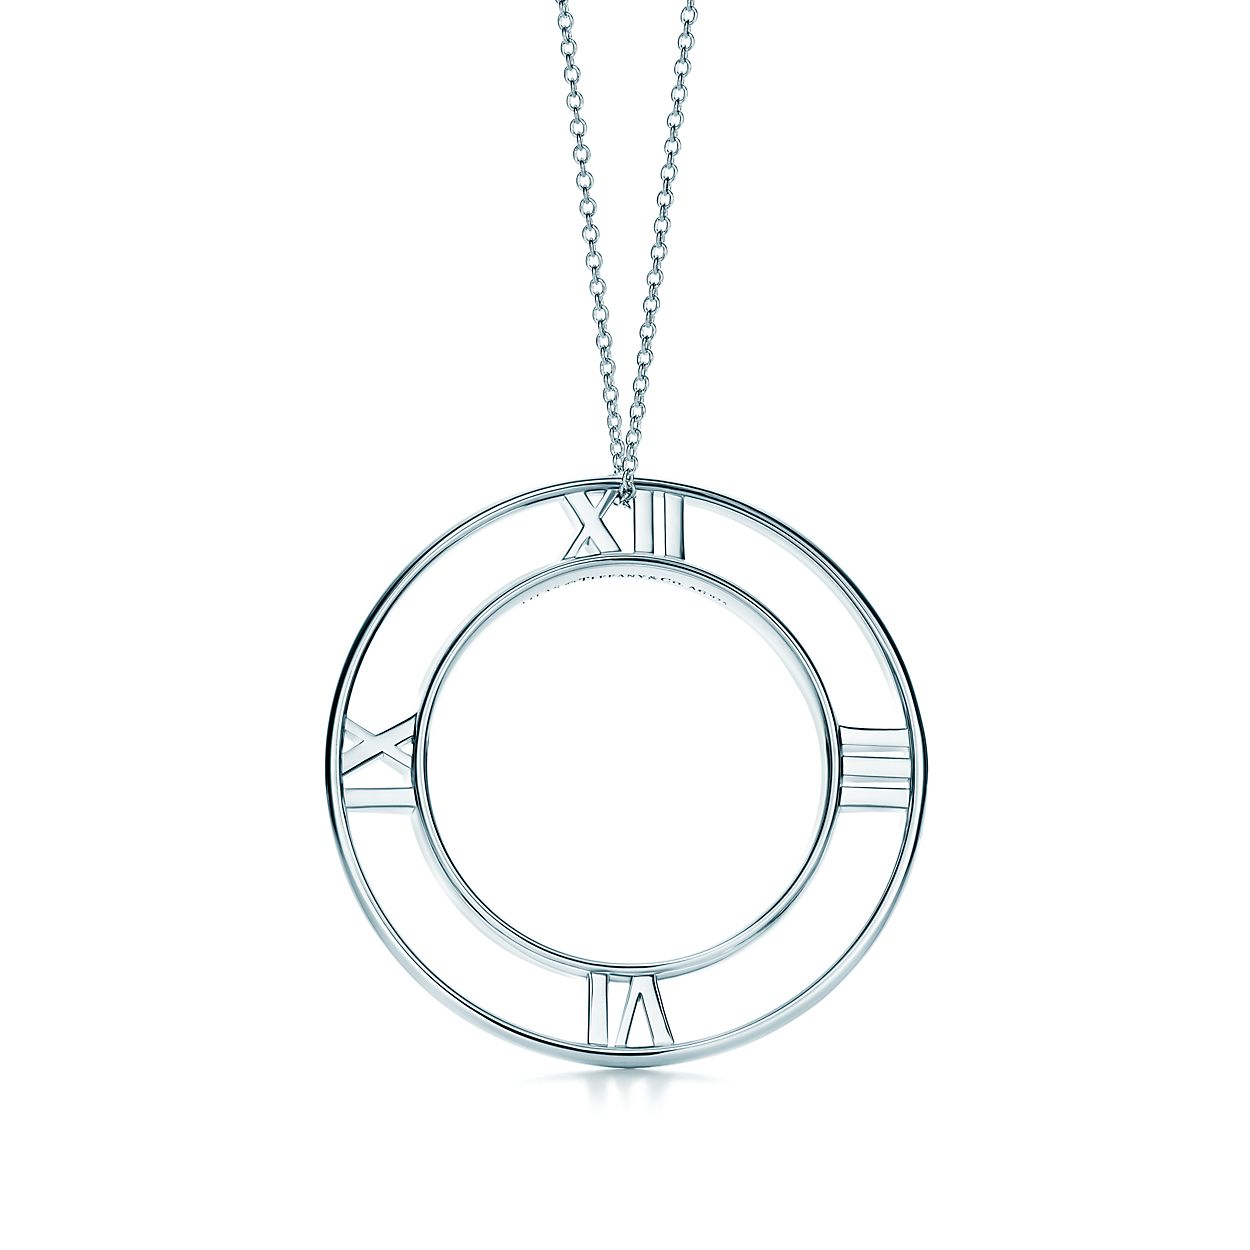 wid large pendant co fit fmt hei atlas silver ed necklaces constrain id pendants round jewelry in sterling tiffany